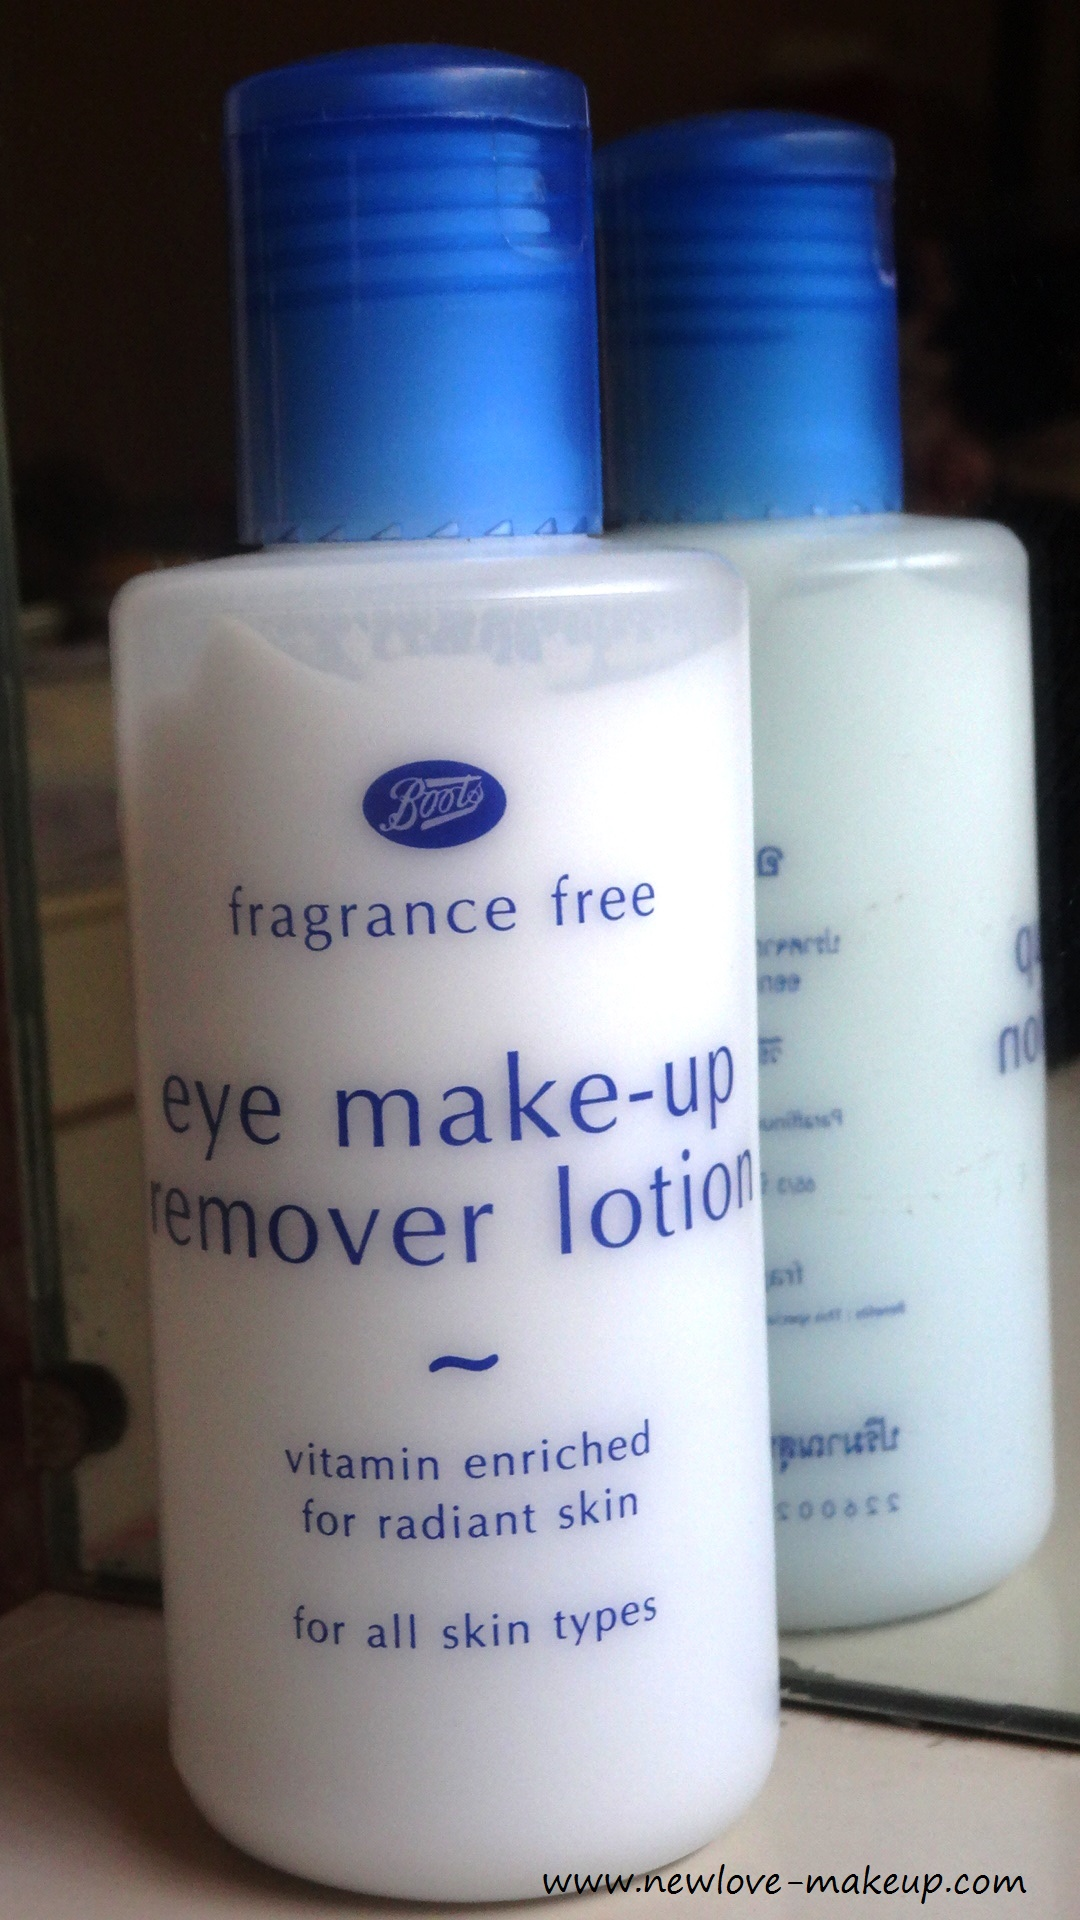 Boots eye makeup remover